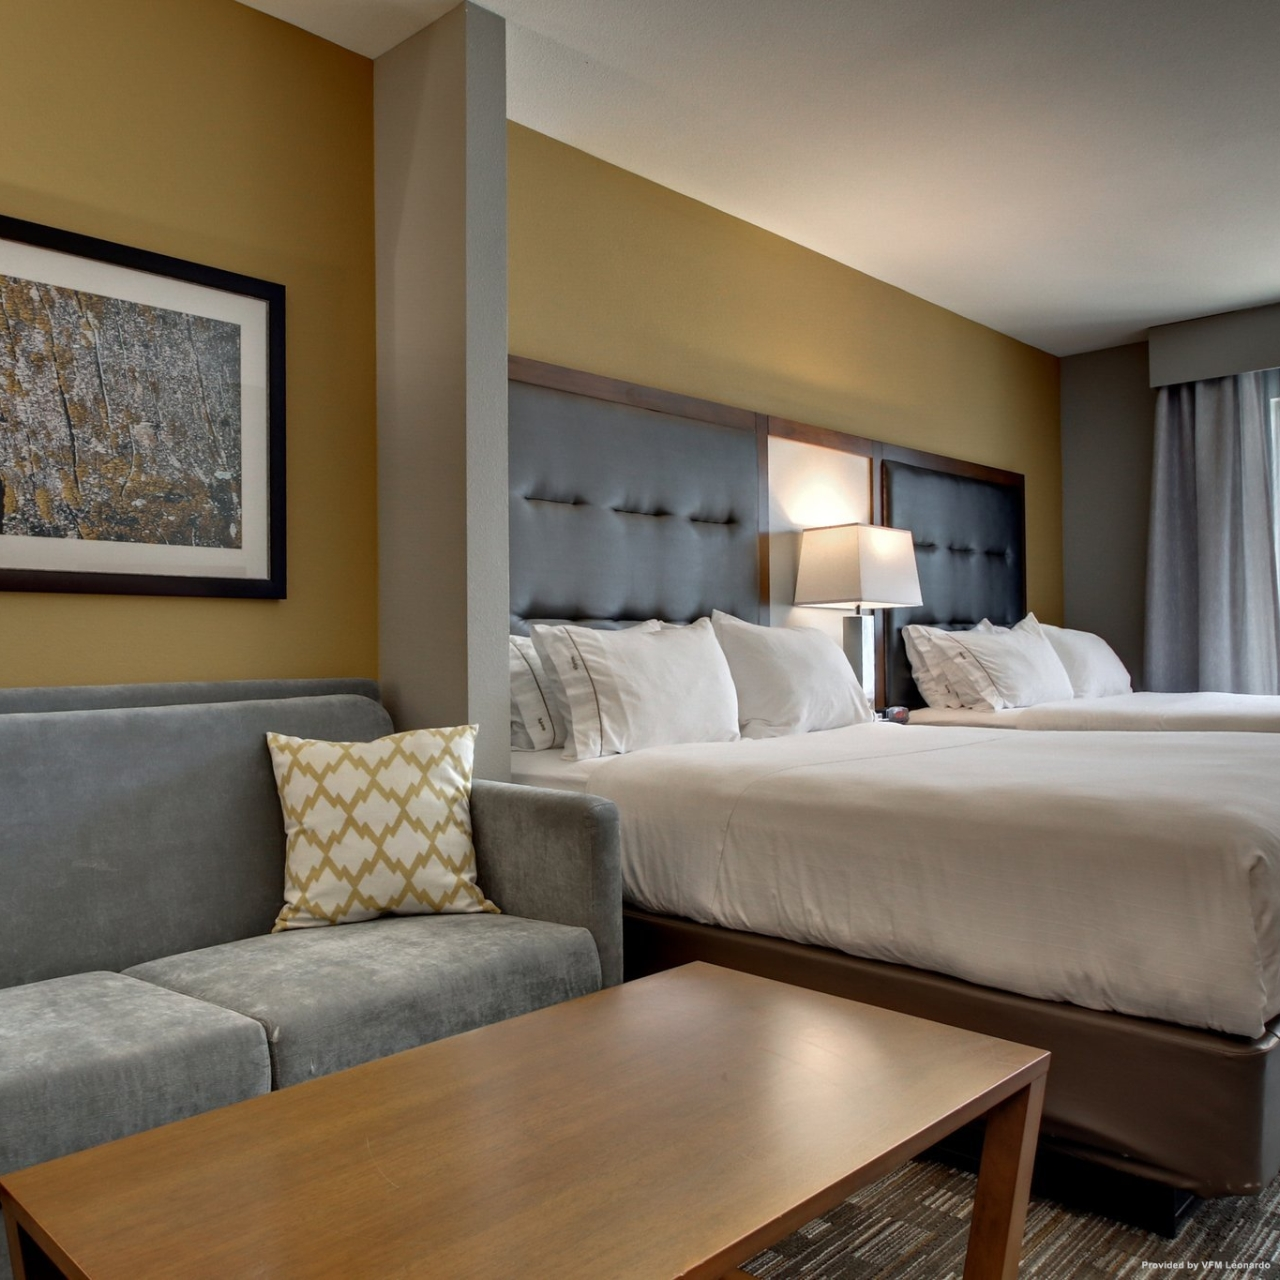 Holiday Inn Express Suites Albany Usa Bei Hrs Mit Gratis Leistungen